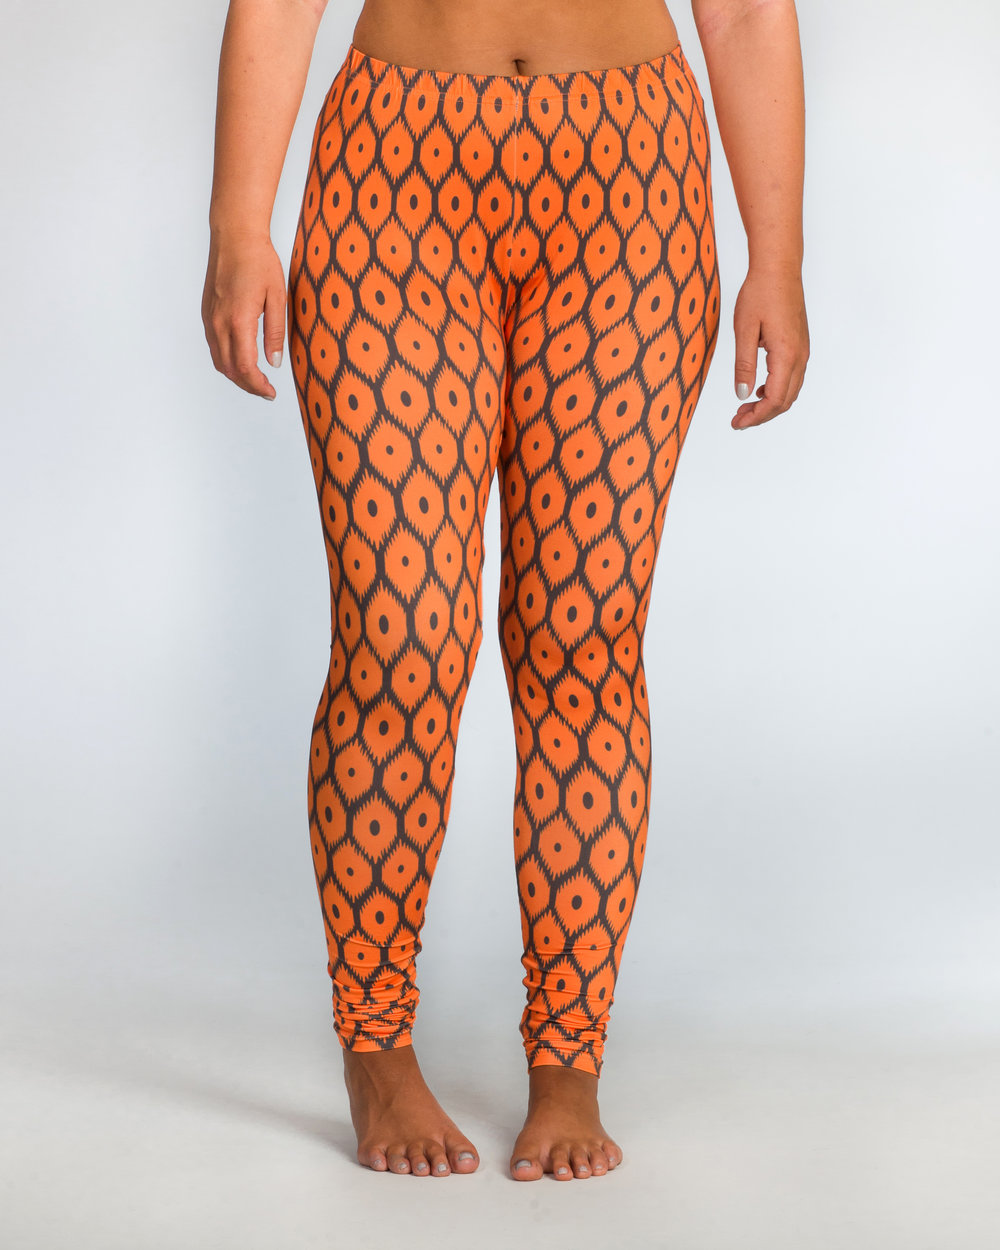 """Scout is 5' 8"""" tall, has 33"""" hips, and chose a size XL in Gameday Leggings Tennessee Flamestitch."""